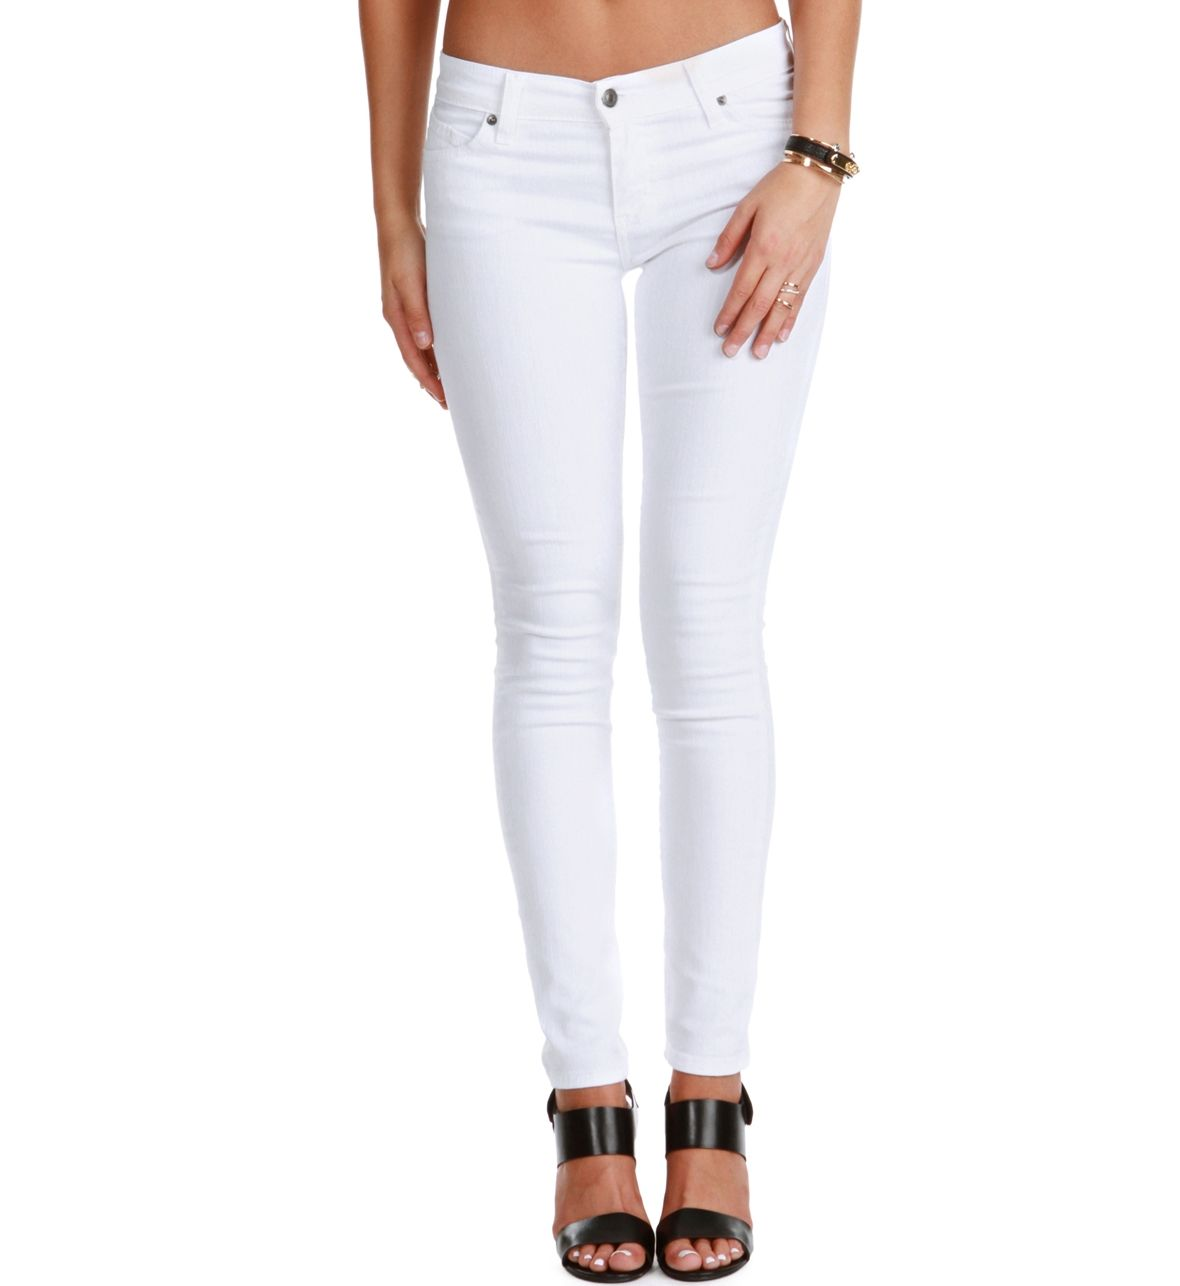 SALE-White on White Skinny Jeans